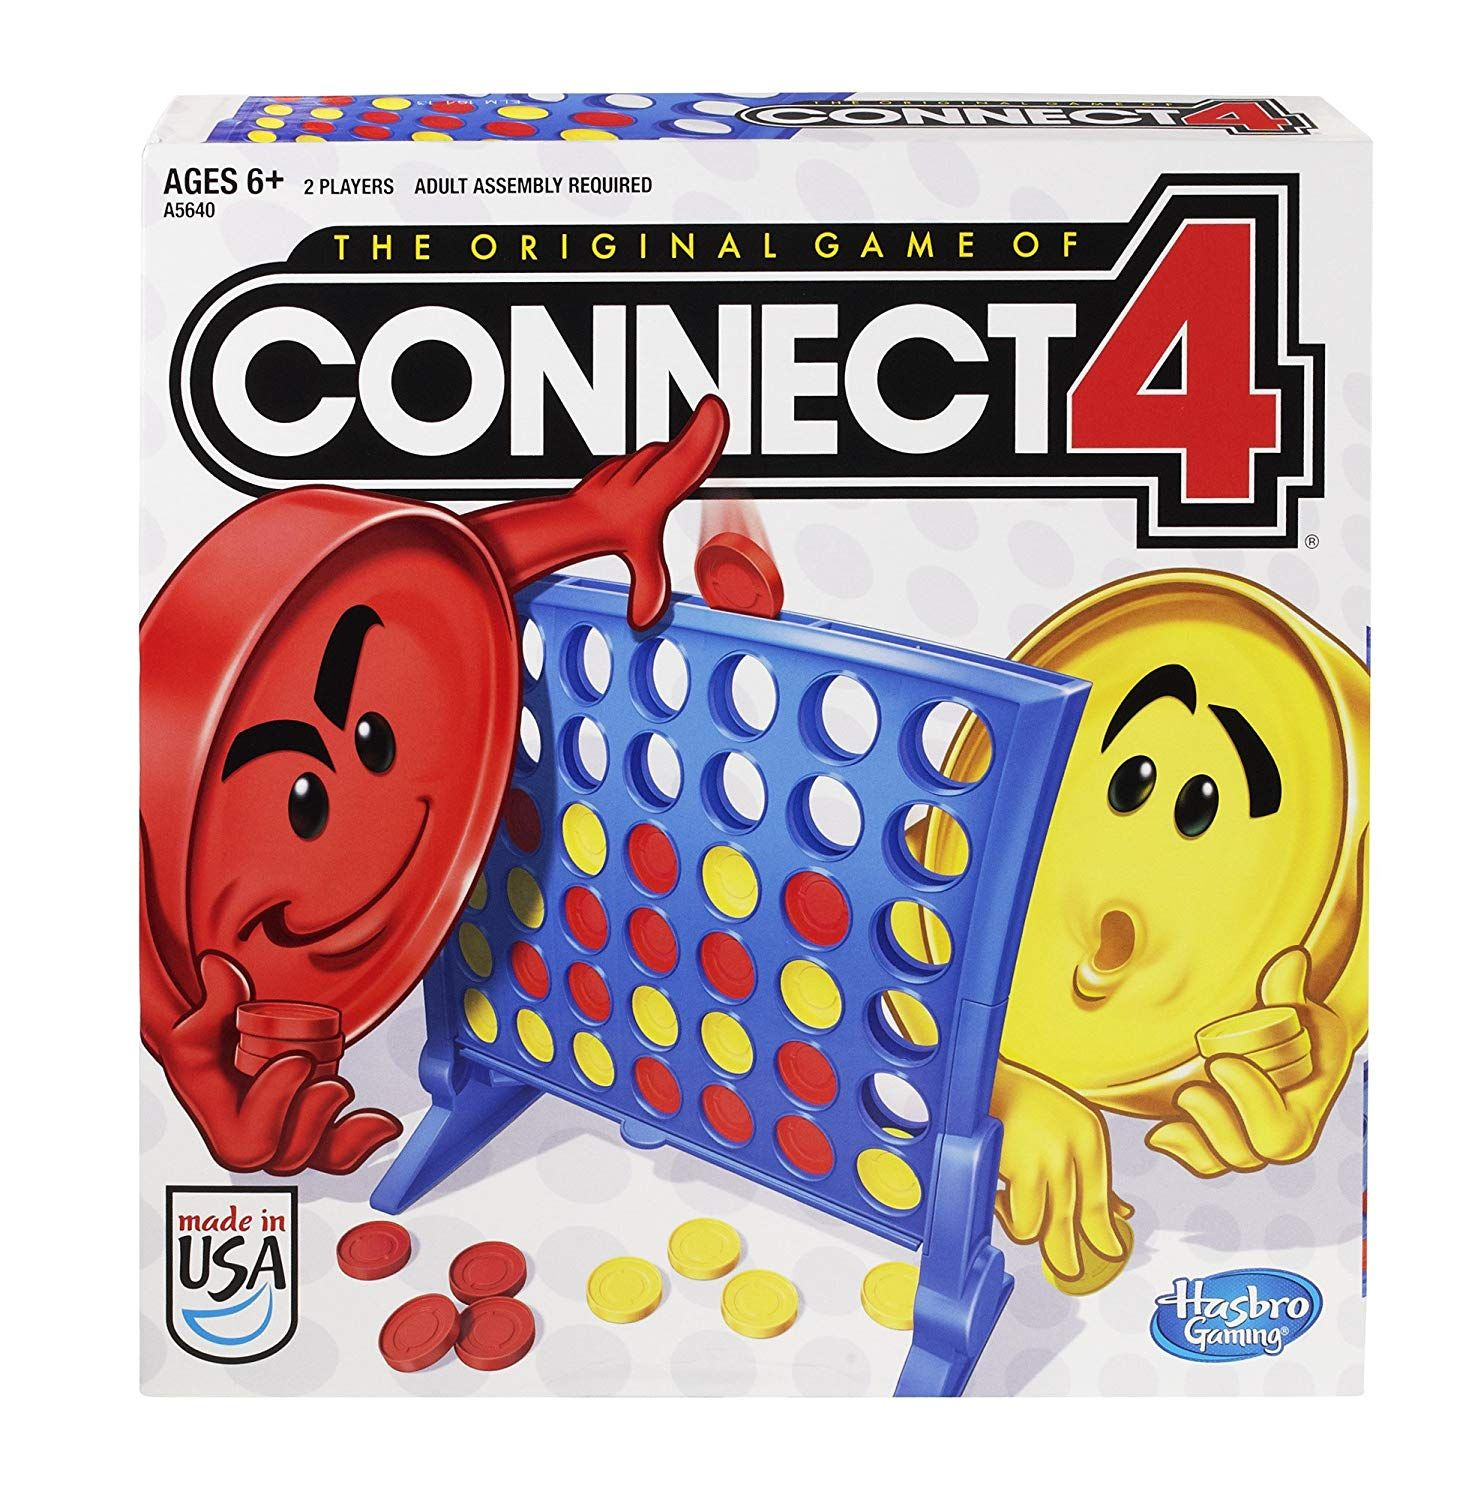 Connect 4 8 Best family board games, Family board